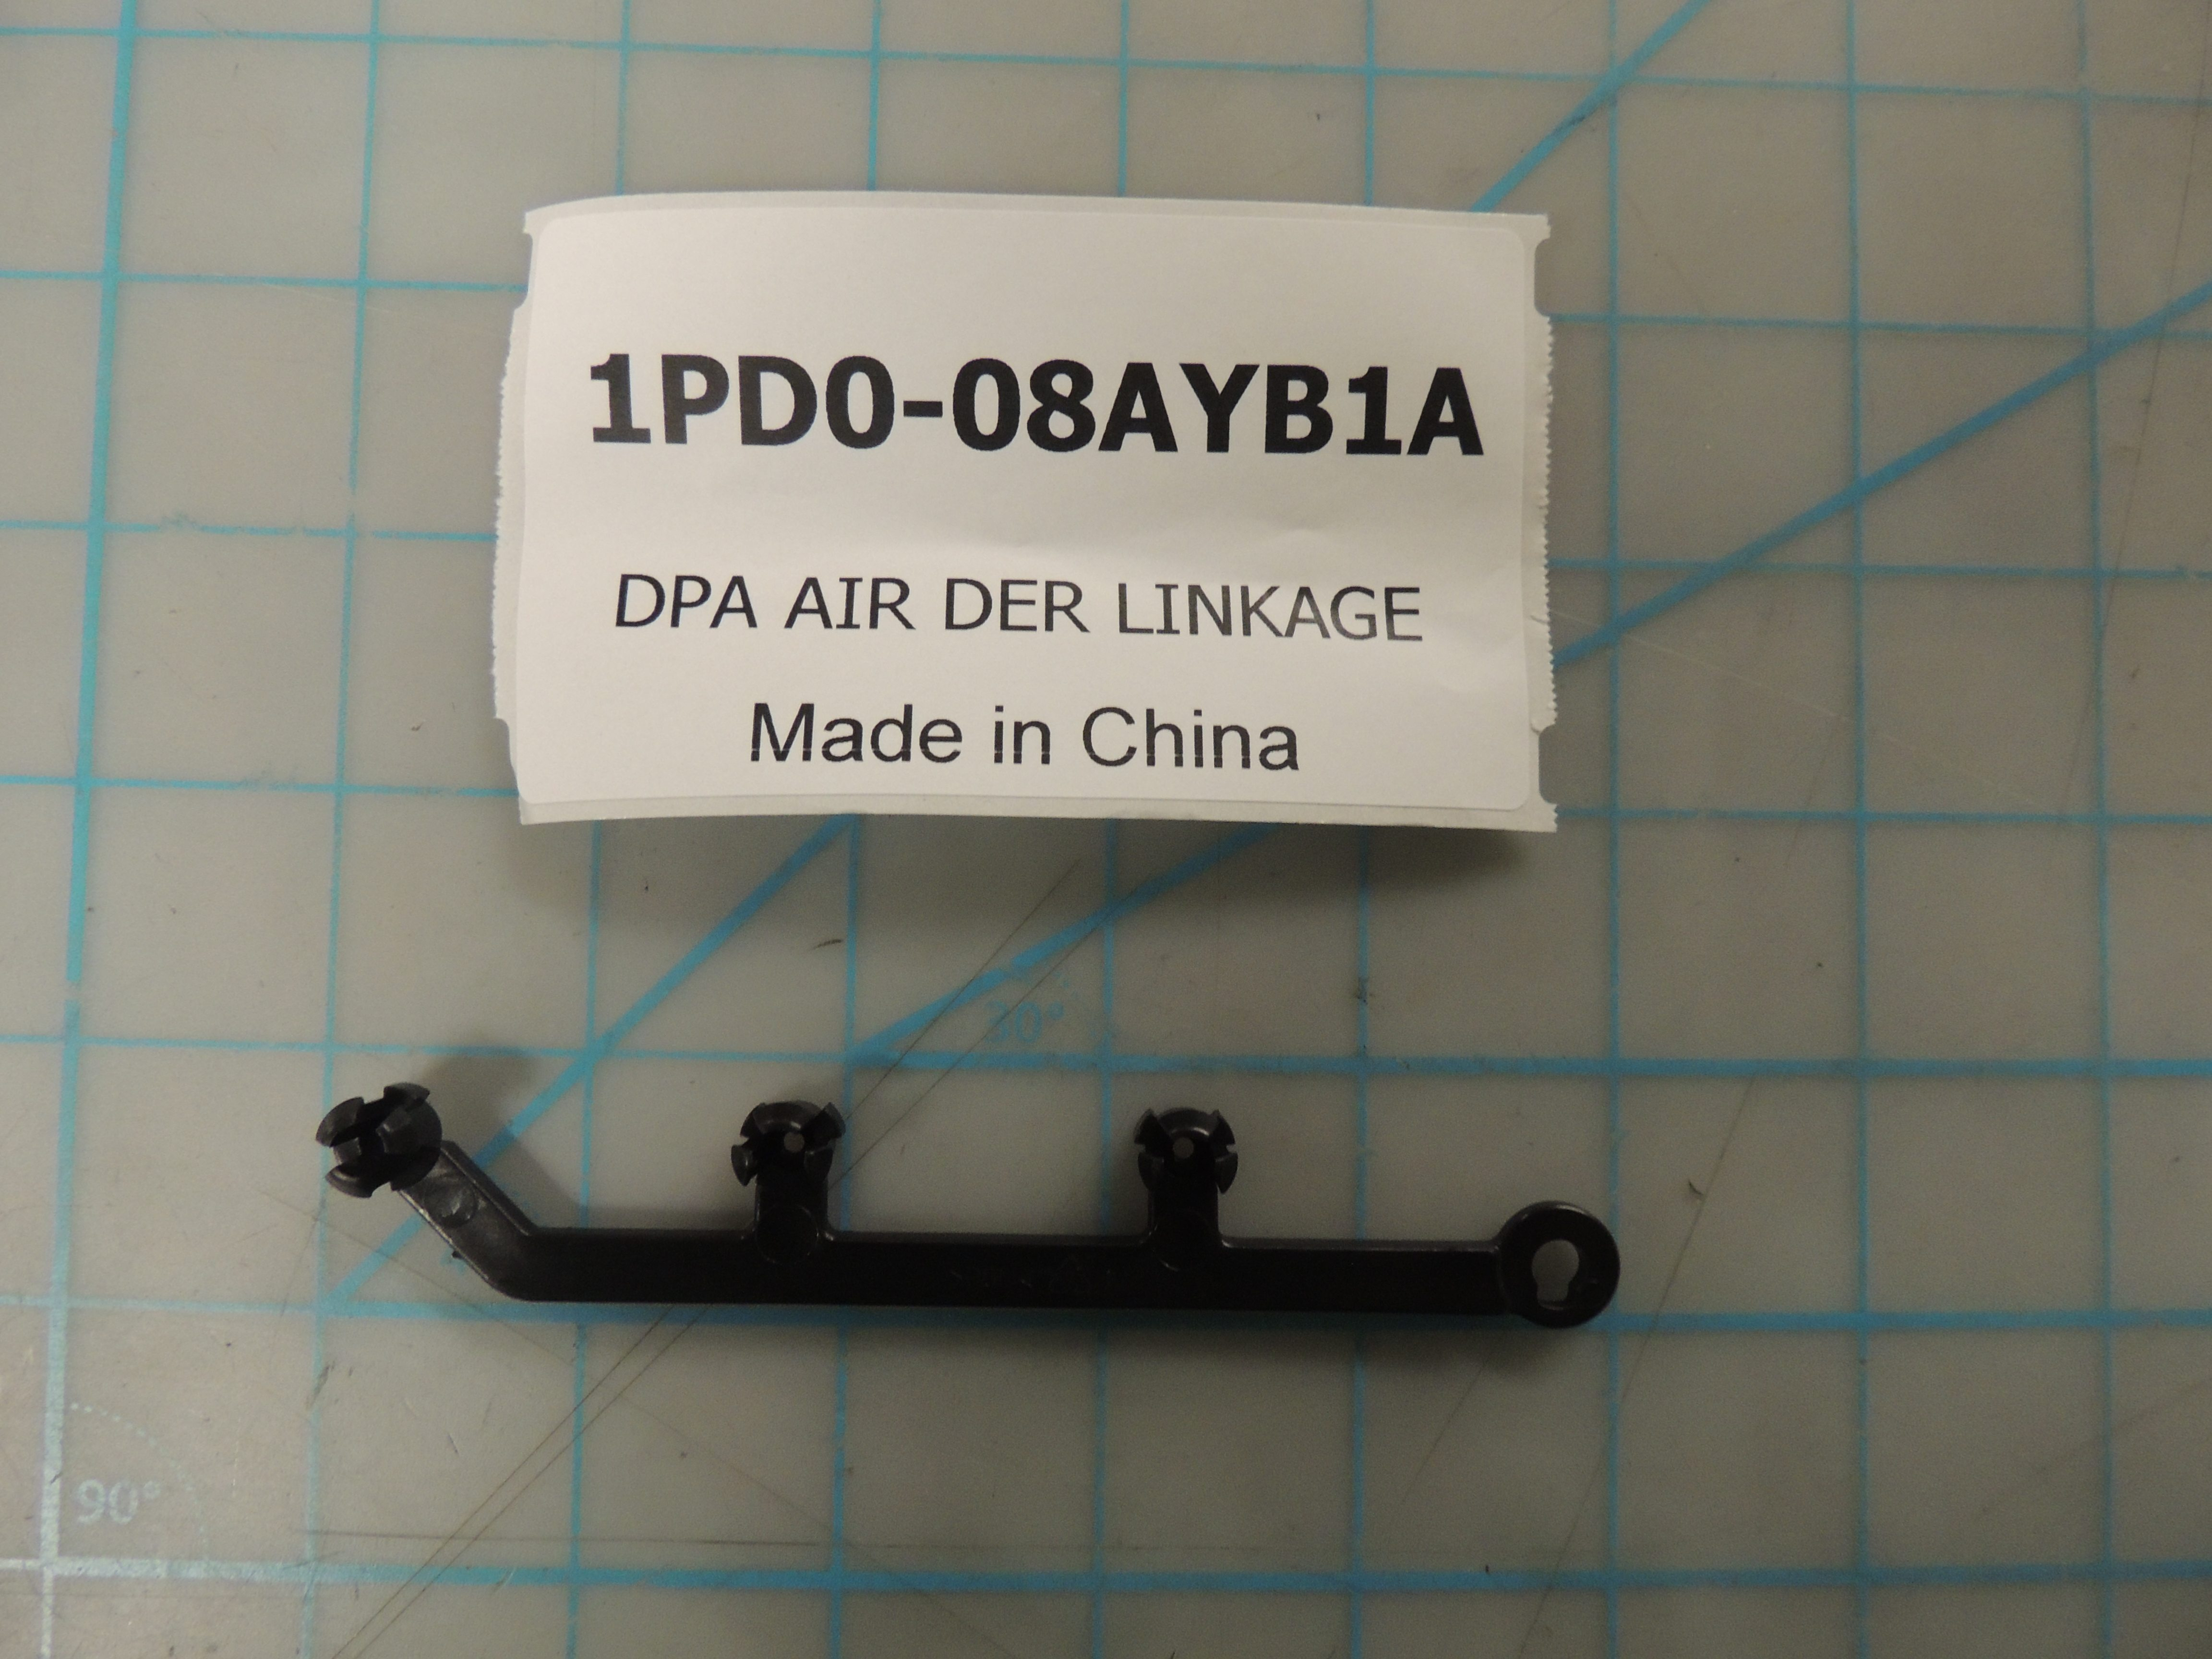 DPA AIR DER LINKAGE